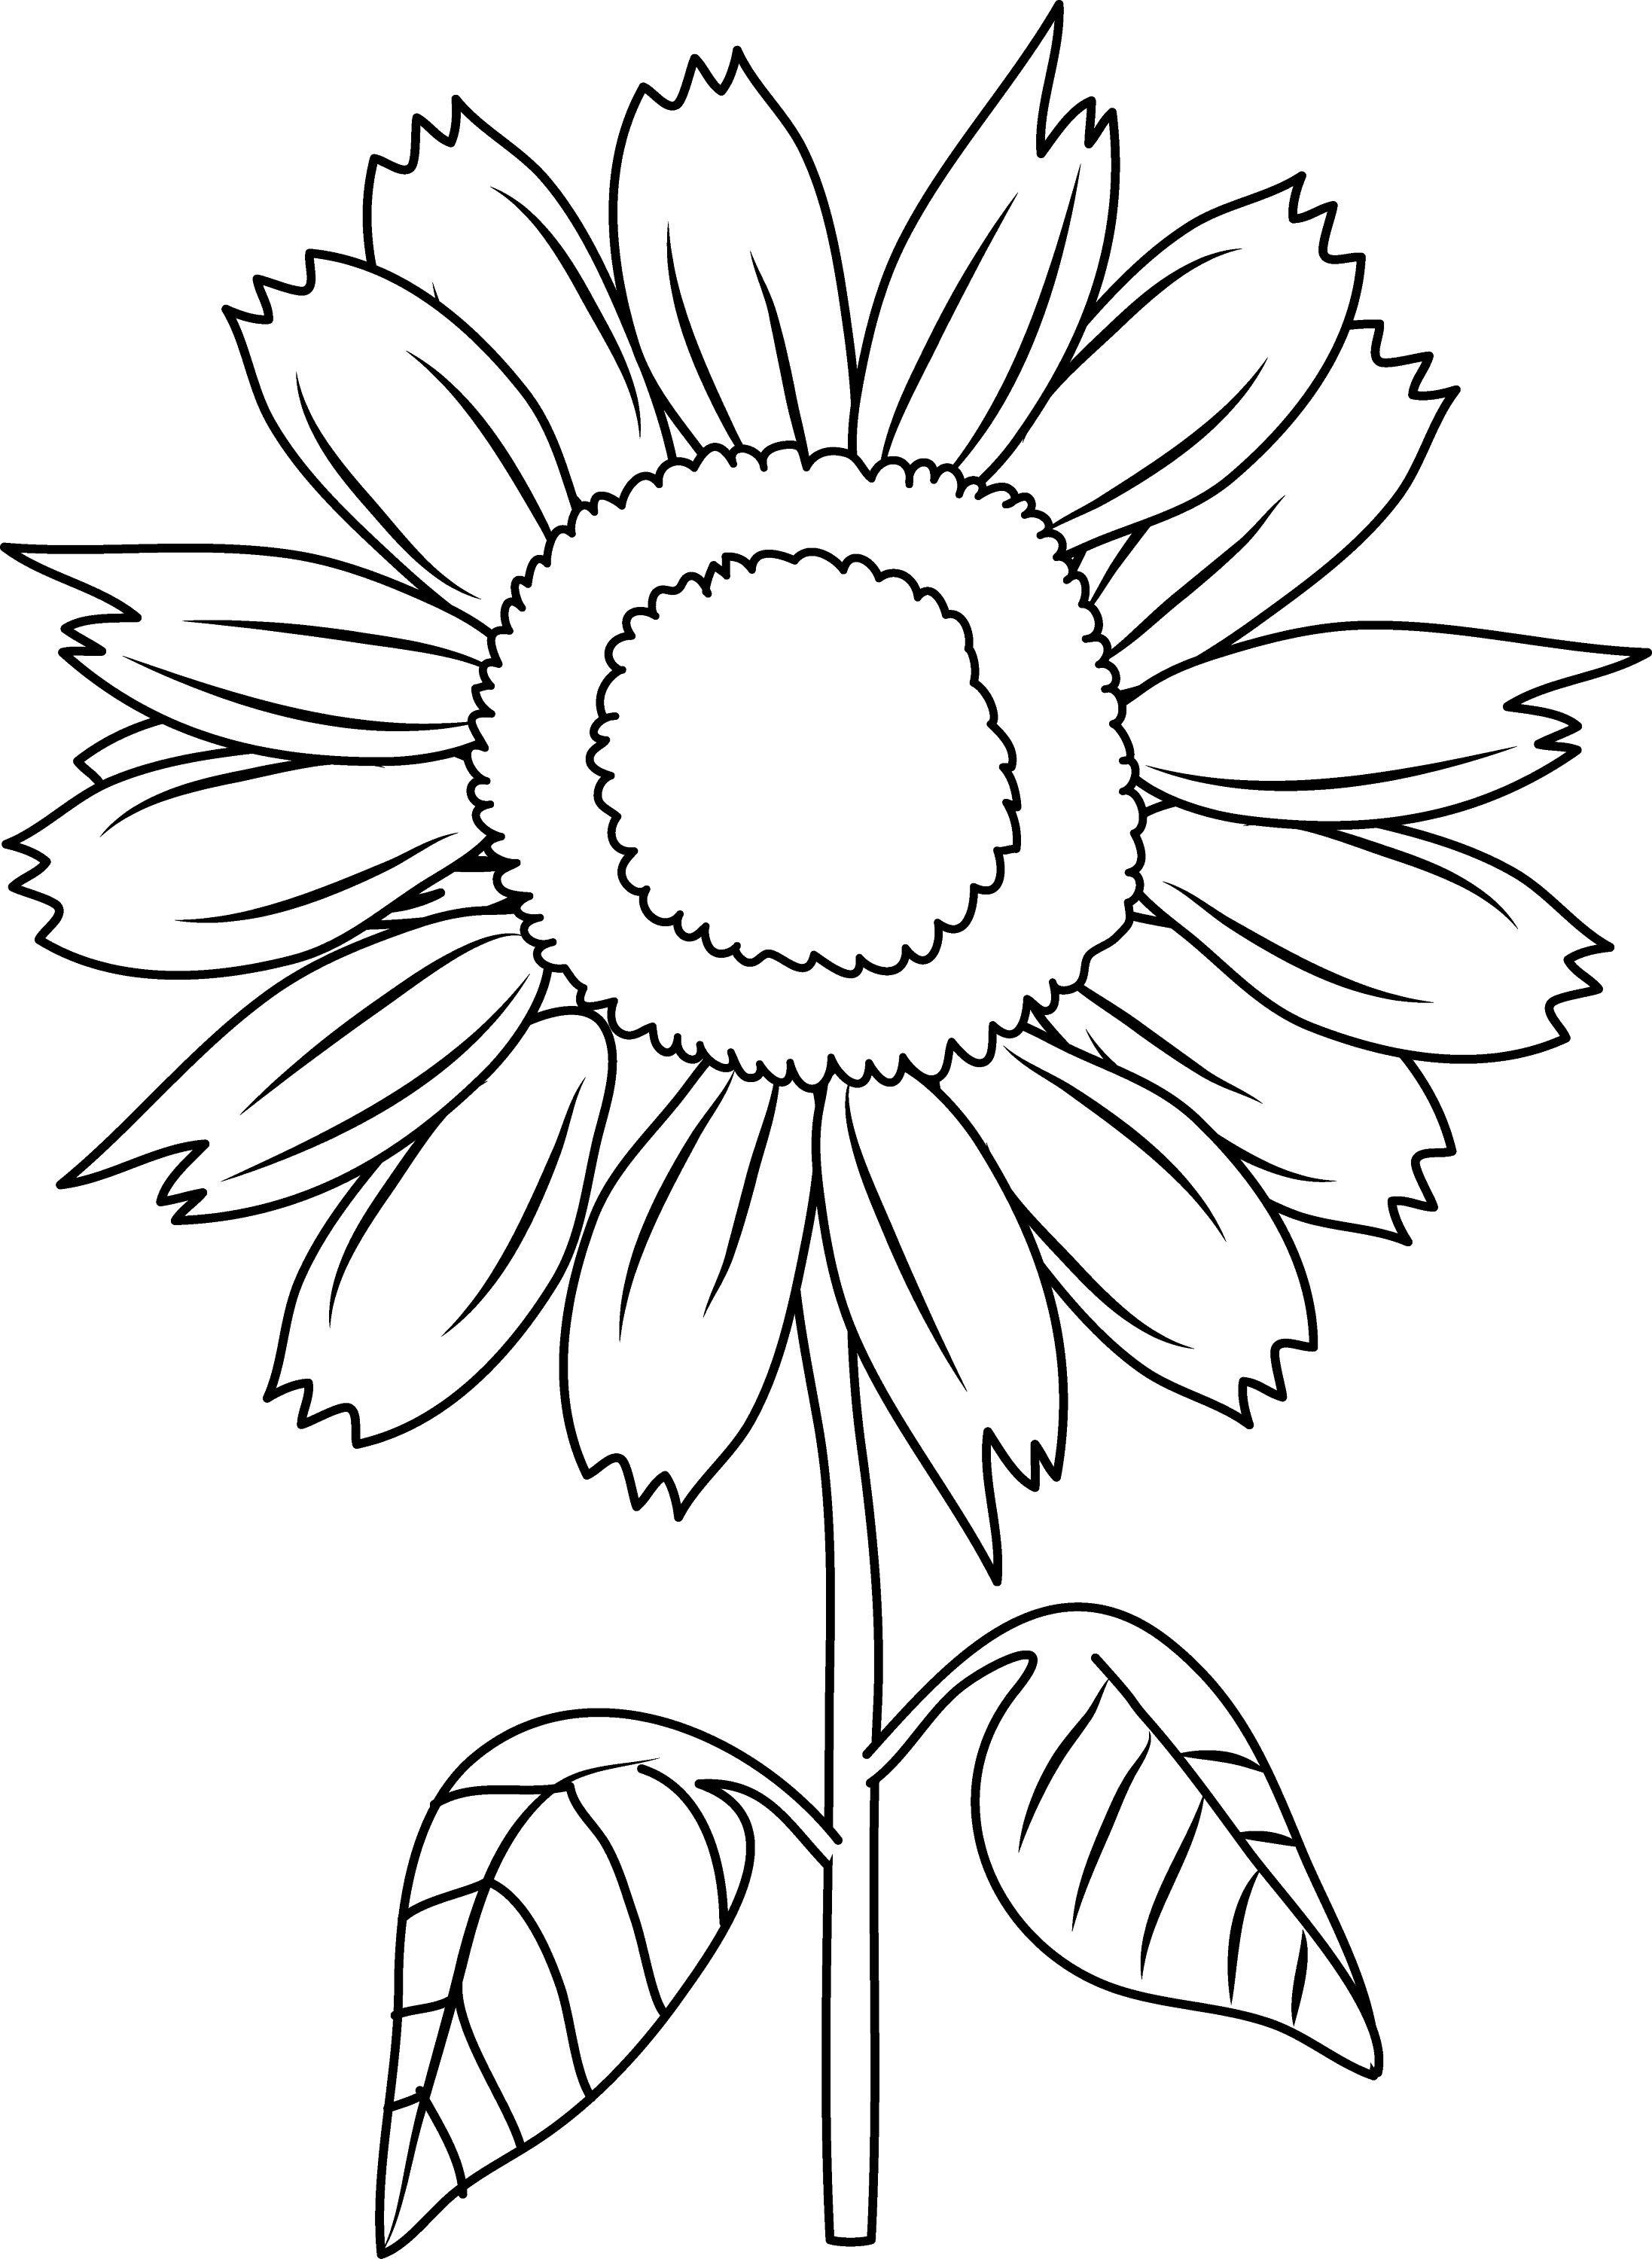 coloring flower png pretty rose coloring page free clip art flower coloring png